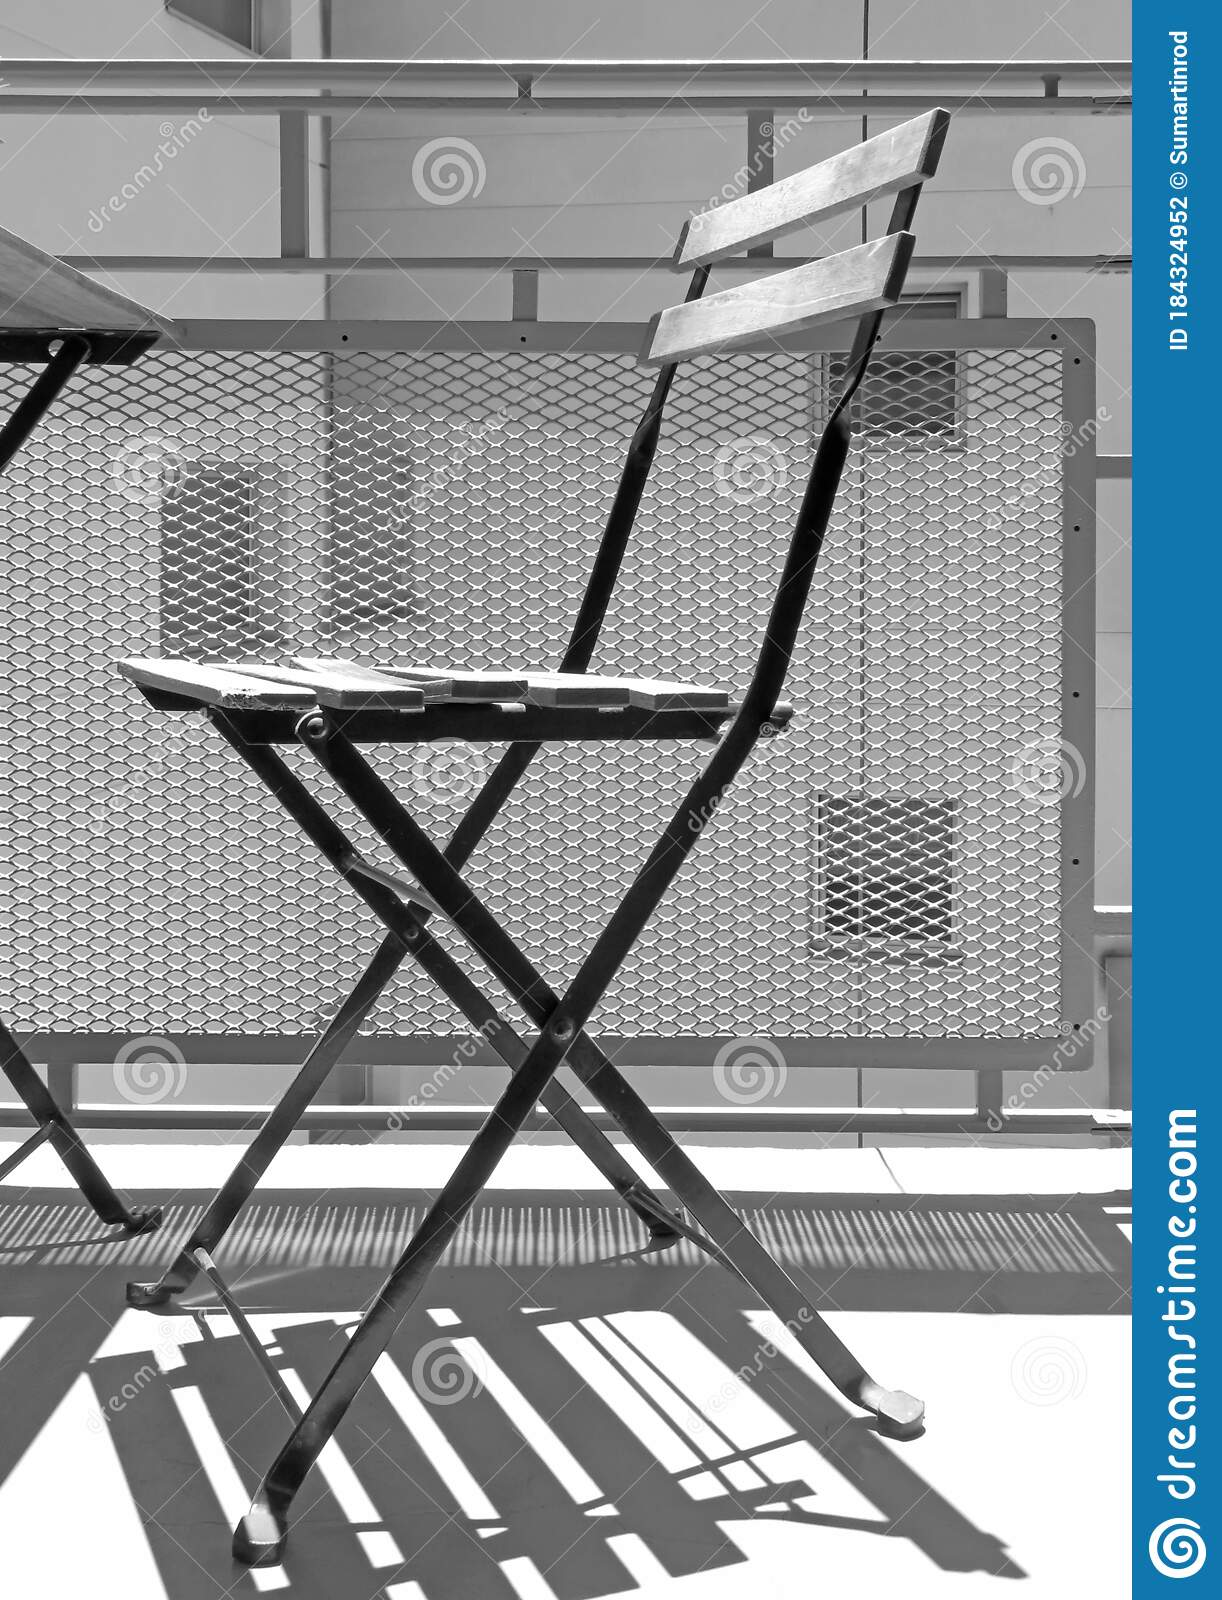 Antique Black And White Wooden Folding Chair Interior Design Modern Urban Architecture Detail Stock Photo Image Of Building Isolated 184324952